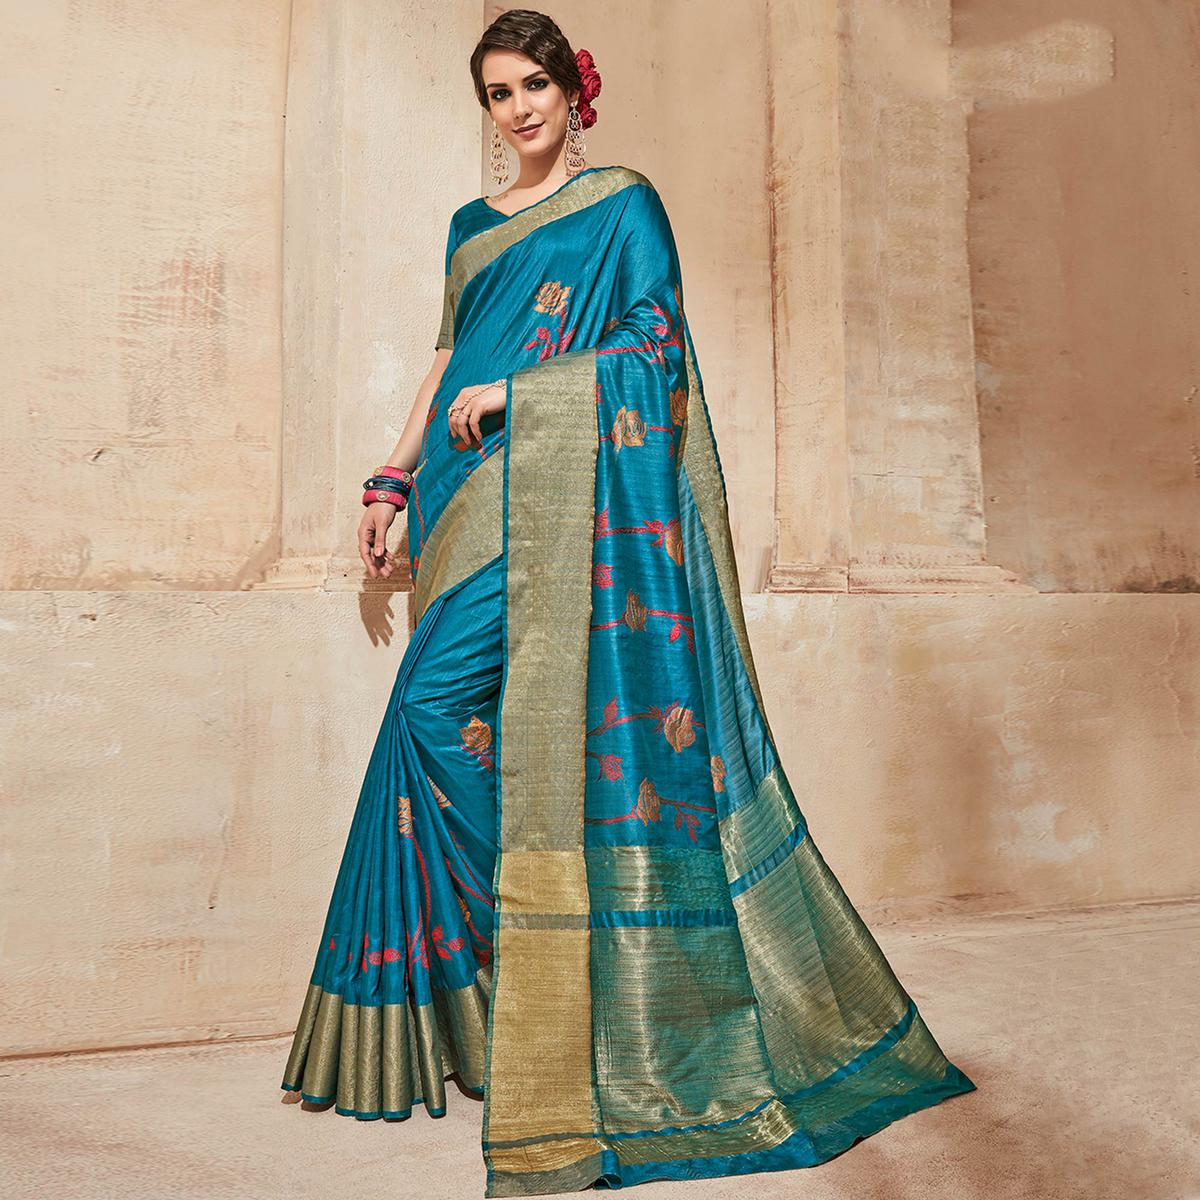 Desirable Blue Colored Festive Wear Thread Work Cotton Silk Saree